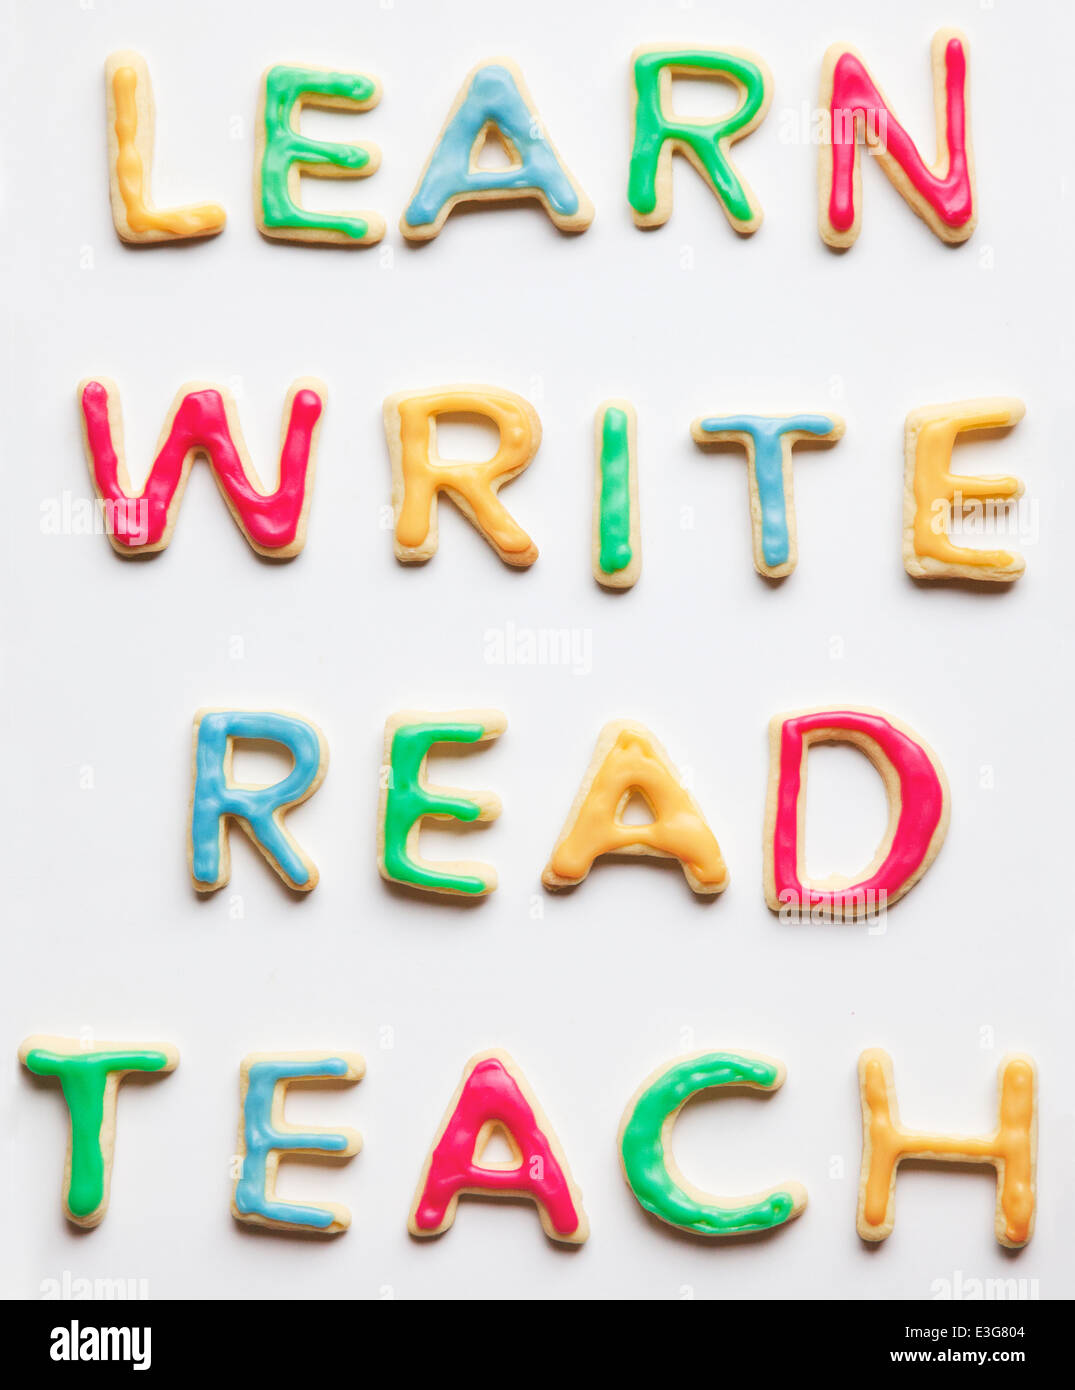 Learn Write Read and Teach decorated cookies - Stock Image